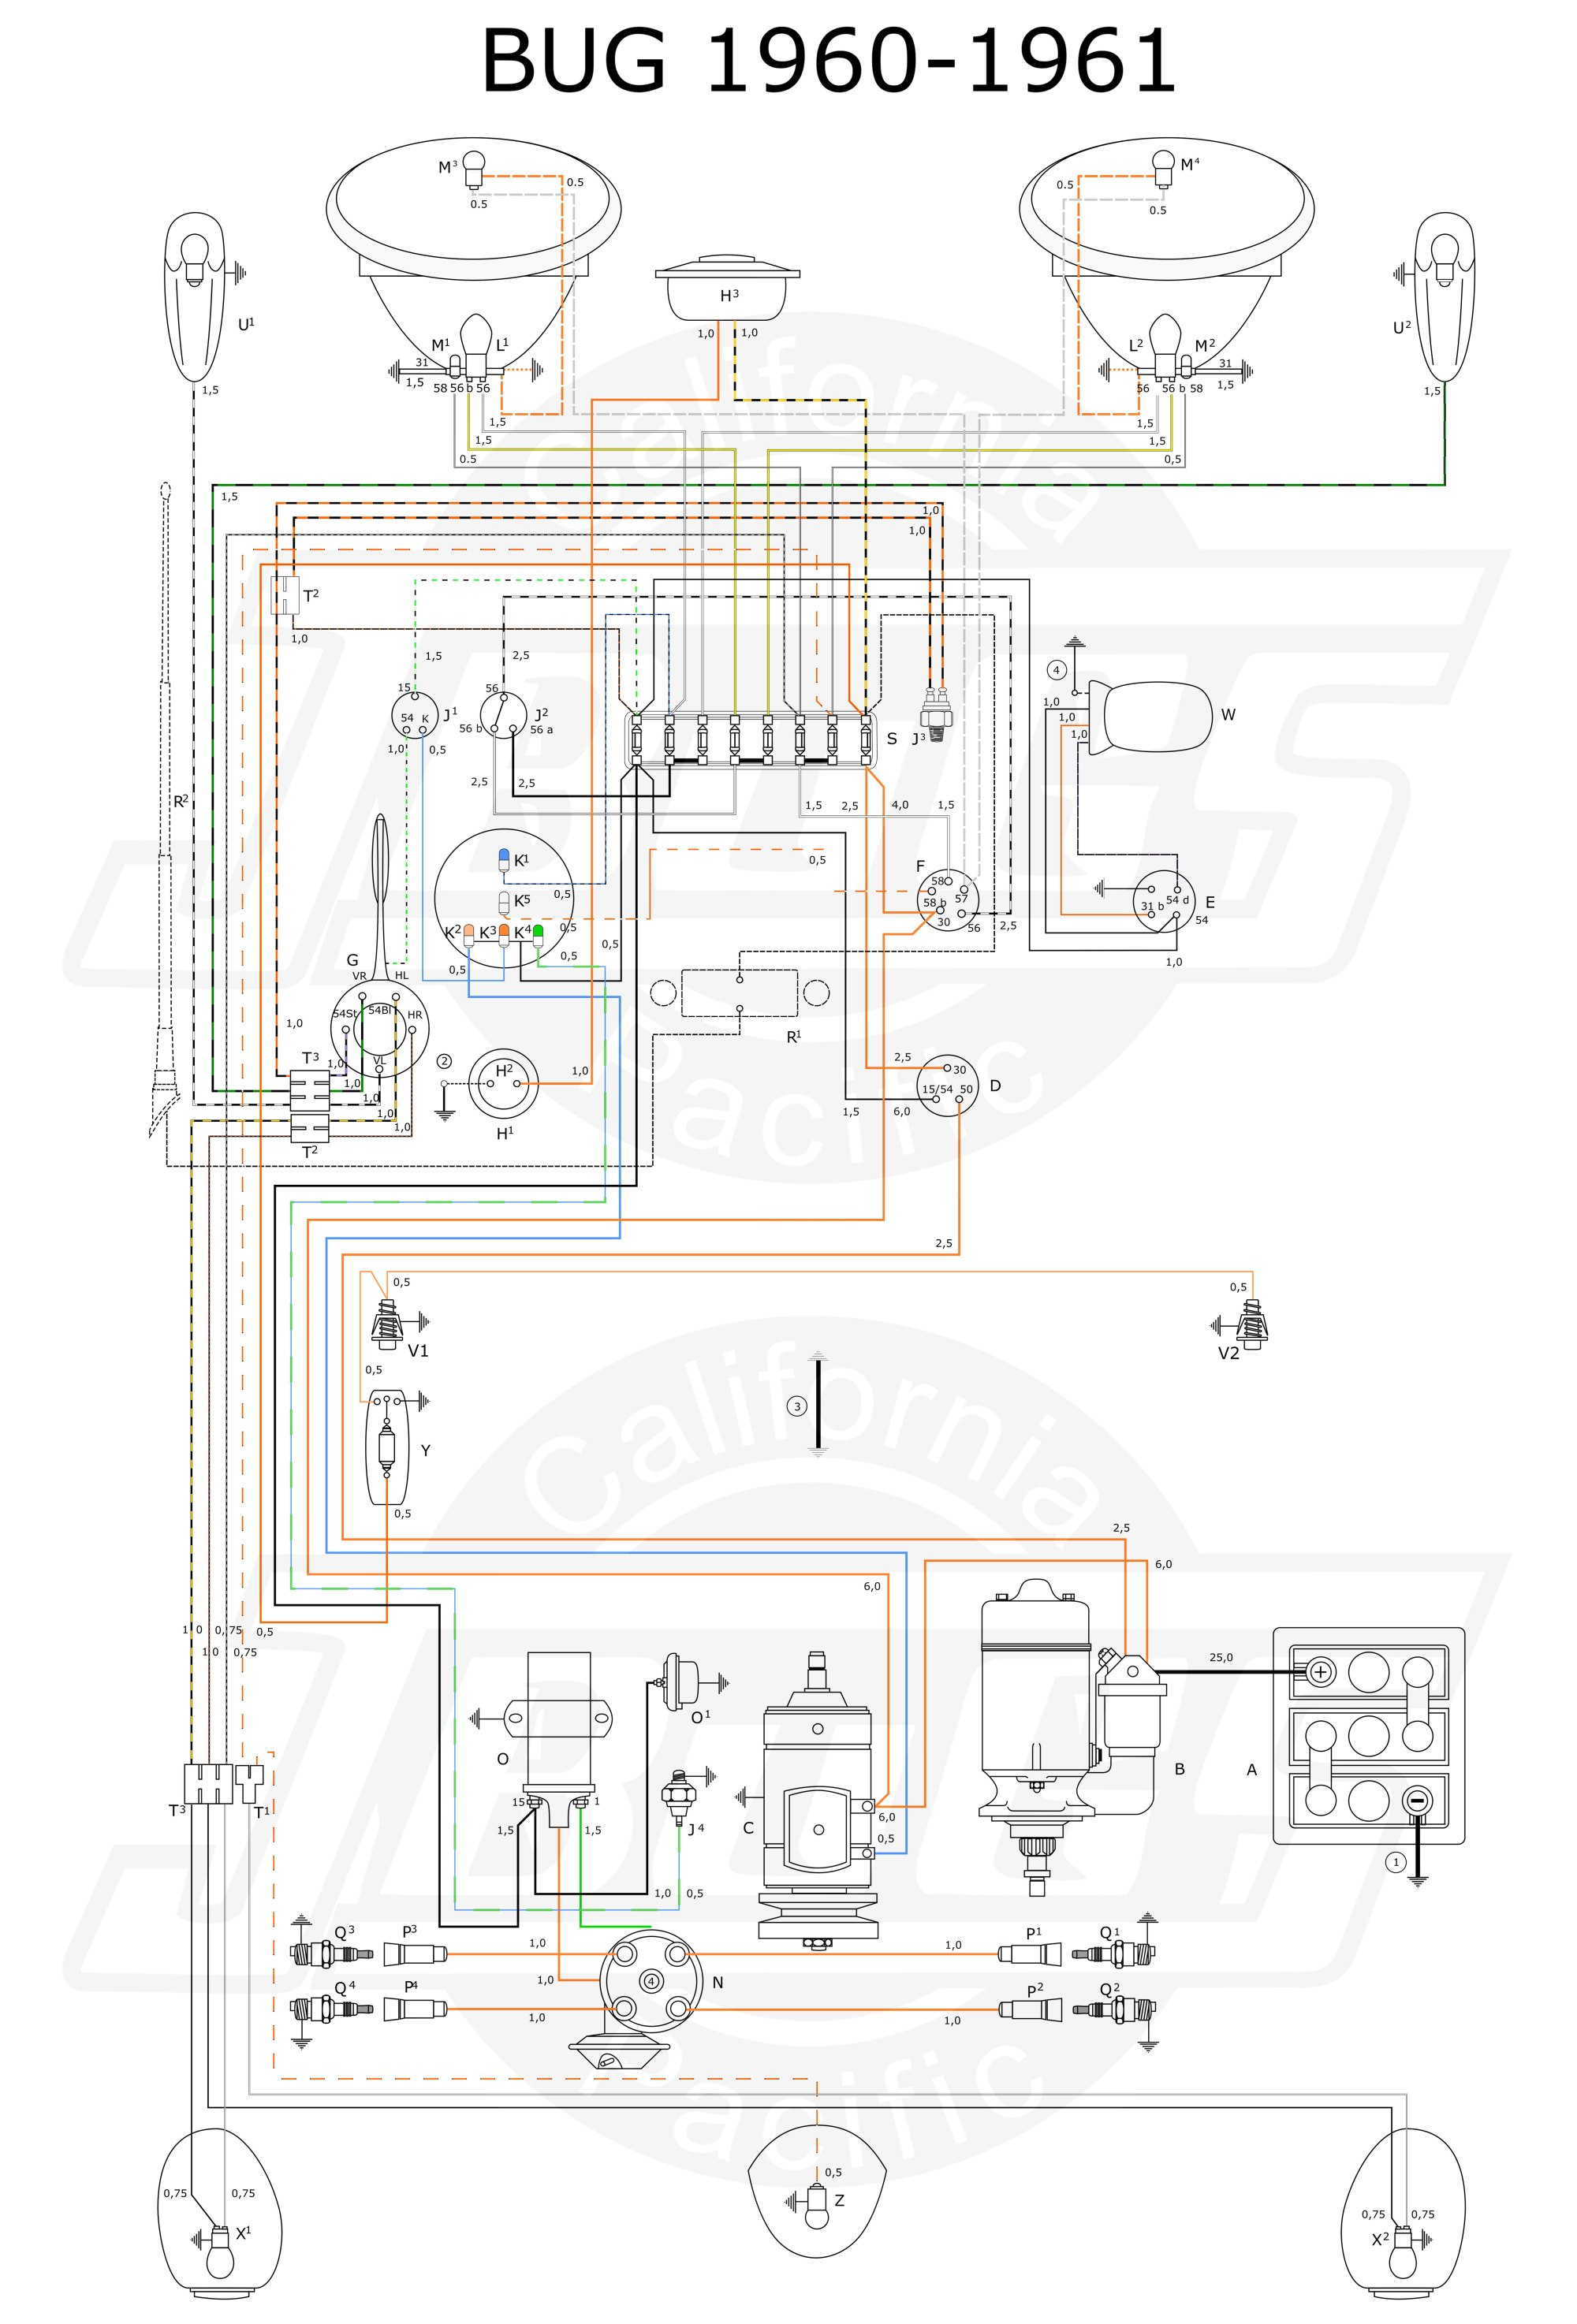 hight resolution of 1999 vw beetle diagram for pinterest schema diagram database vw air cooled engine diagram for pinterest